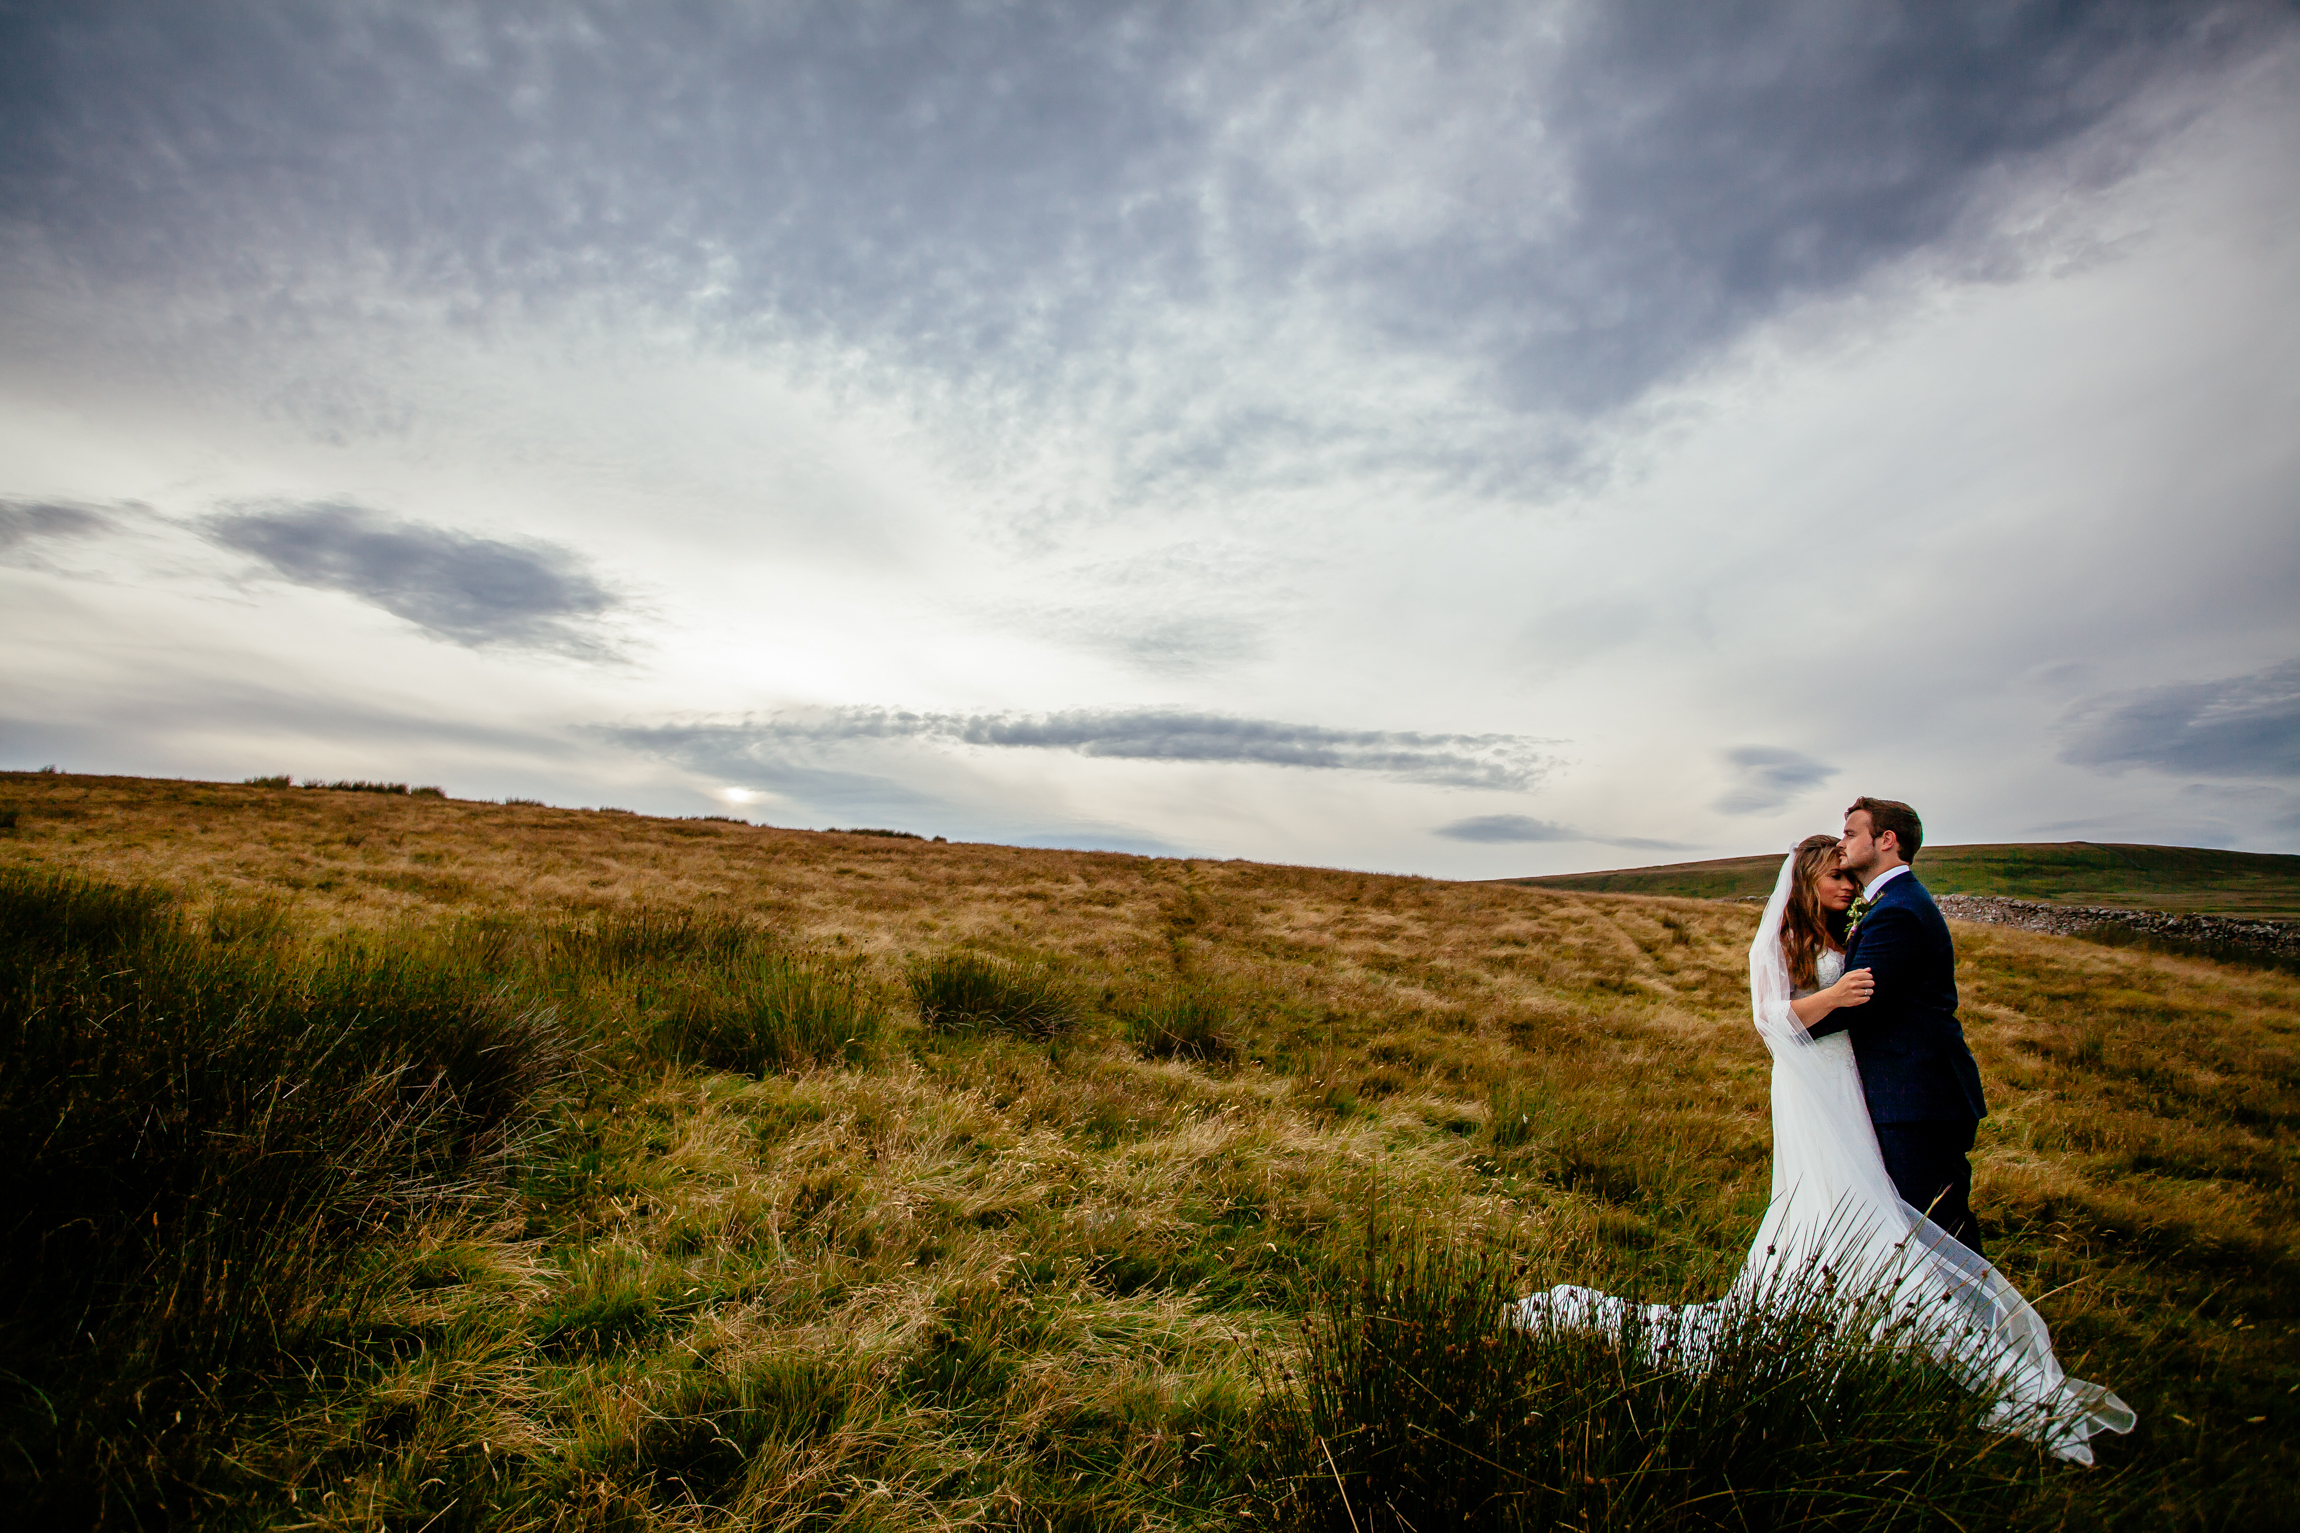 Emma & Dave - Sansom Photography Yorkshire Dales Wedding Photography UK-43